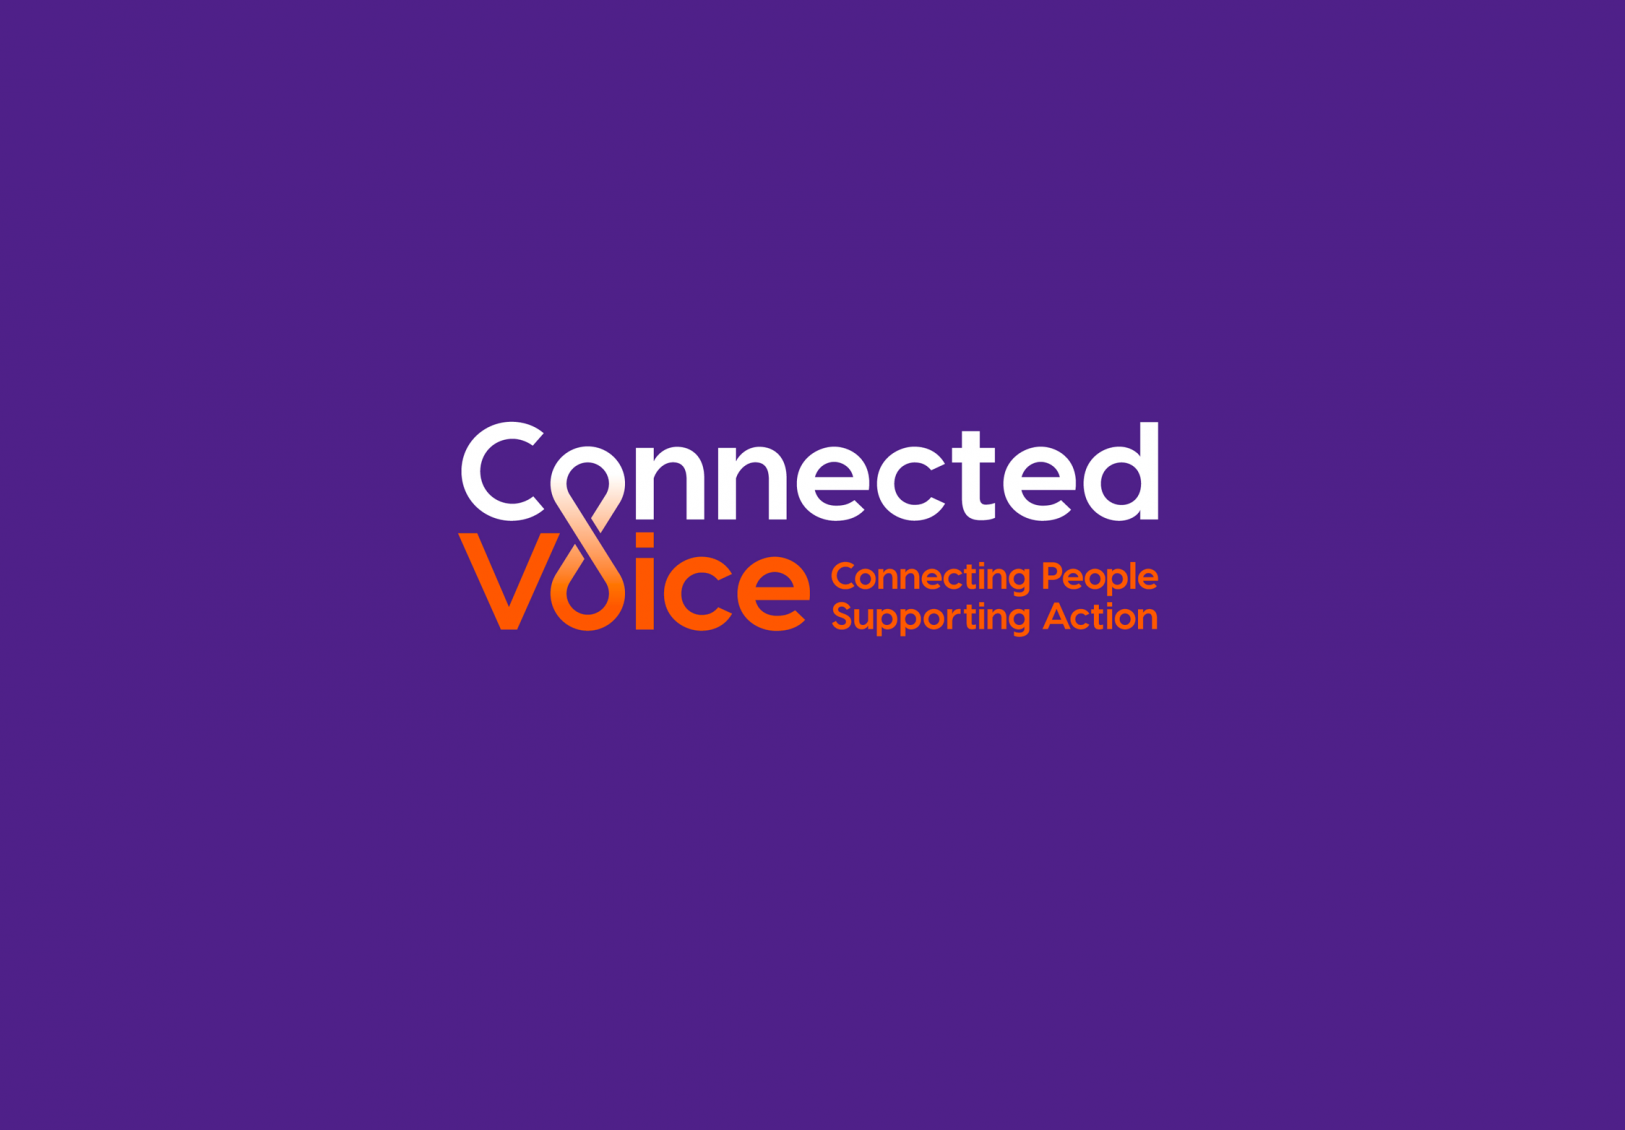 Connected Voice Newcastle charity branding for regional cvs by Altogether creative.